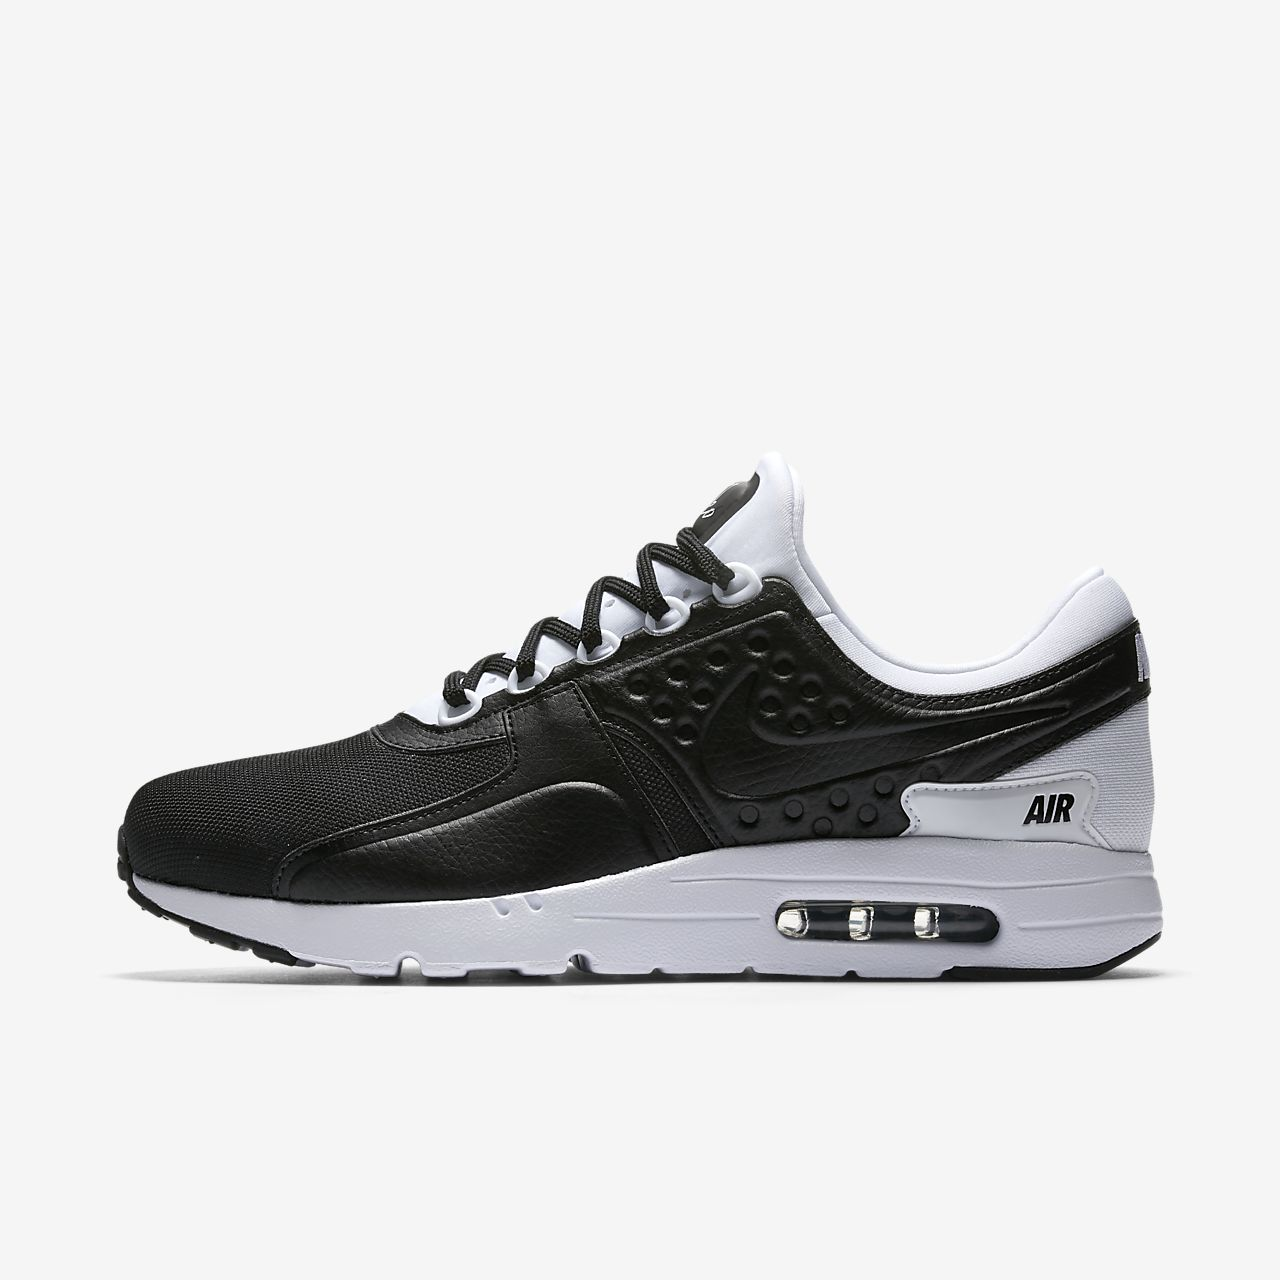 dfa87d434e3 shoes like air max cheap   OFF42% The Largest Catalog Discounts